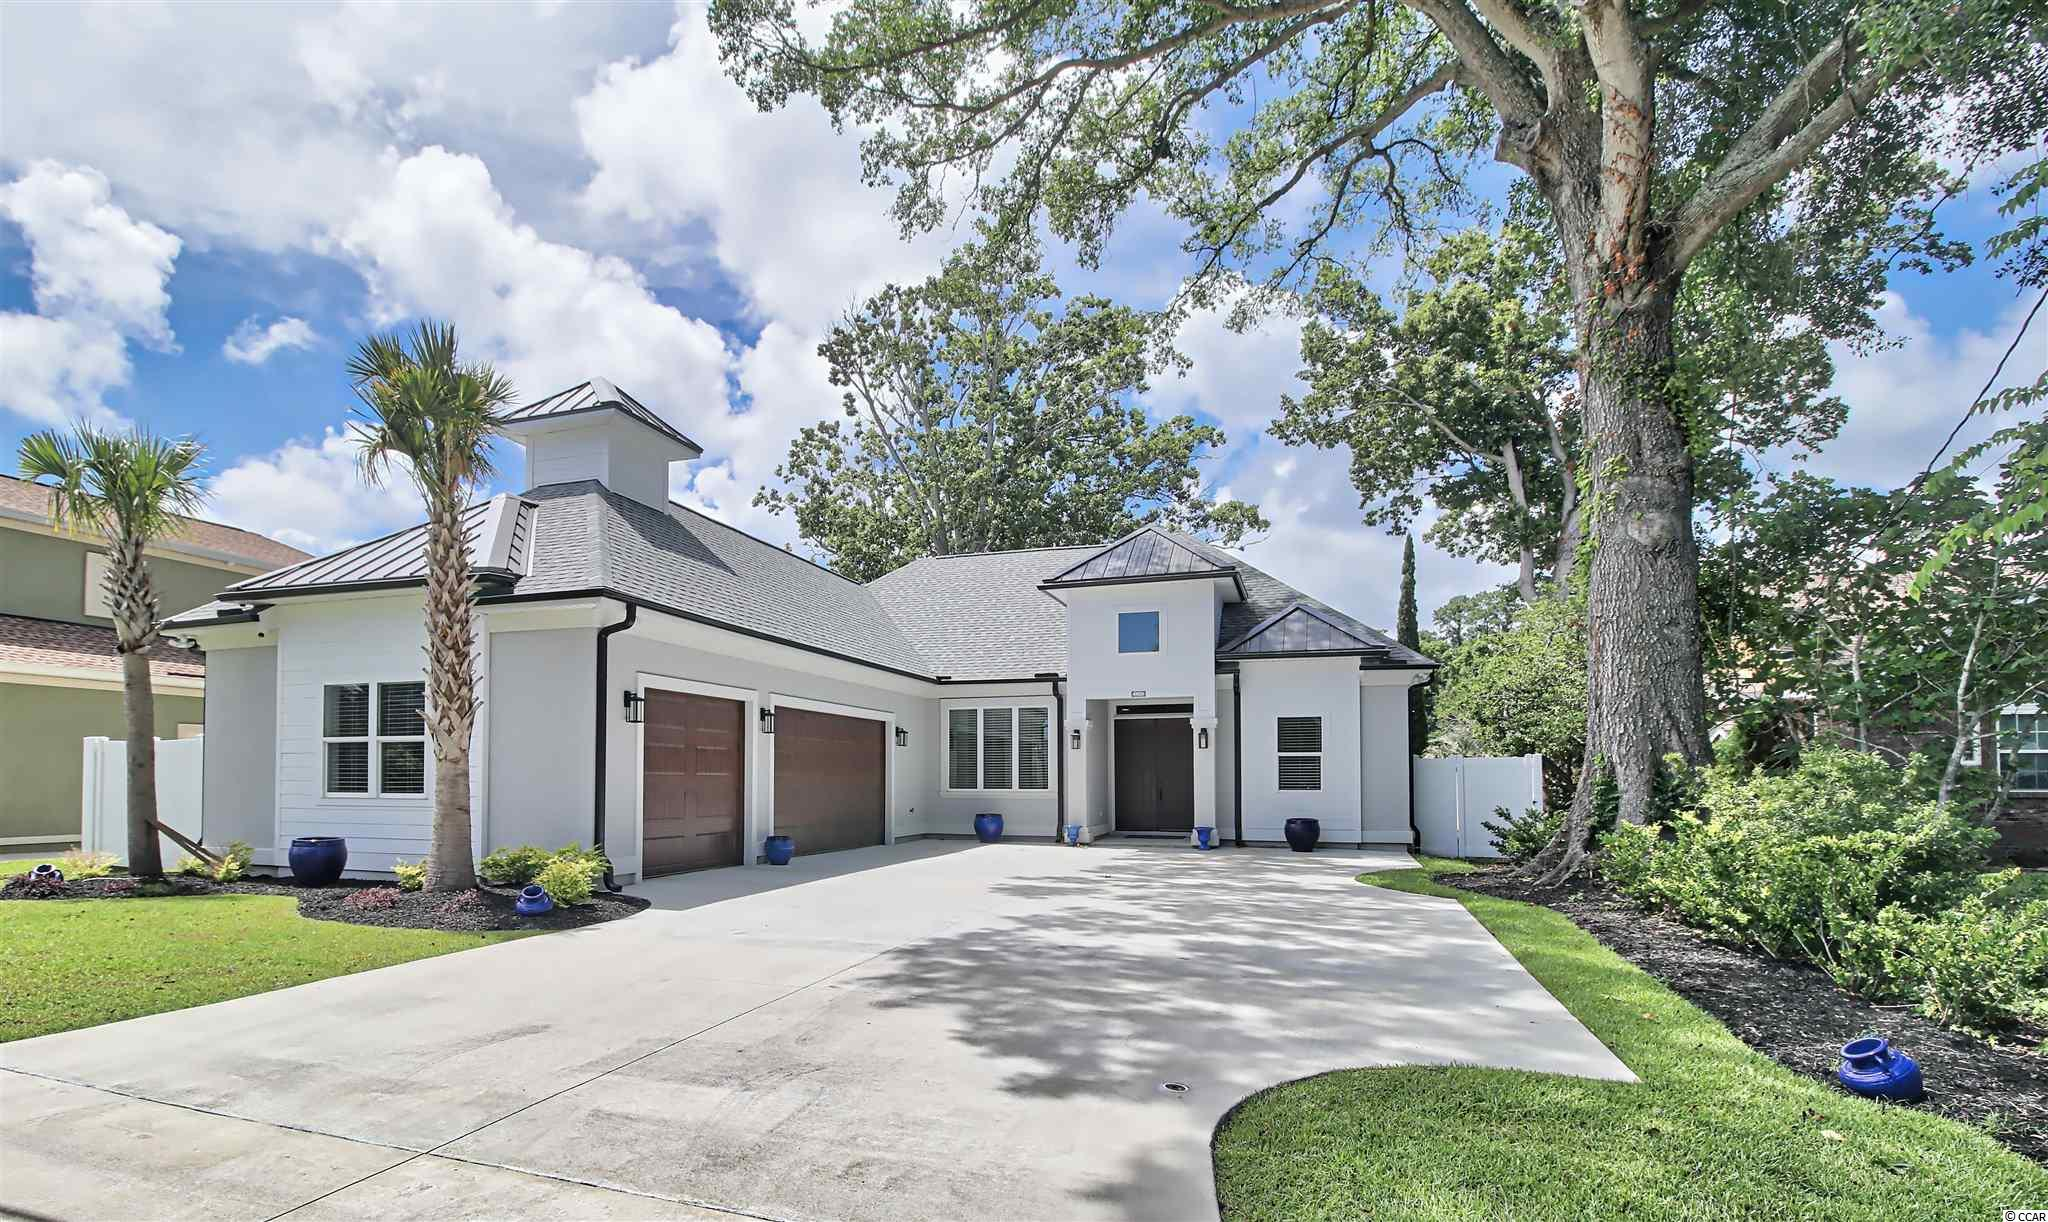 """Welcome to Myrtle Beach's best kept secret: WATERSIDE DR, a centralized, intracoastal waterway, no HOA, no flood zone neighborhood with a private boat ramp! This custom WATERFRONT home was finished in August of 2020. It sits on a rare 70' x 200' lot on a dead end street. At the front of the house is a 300+ year old oak tree. At the rear is a 200+ year old white oak, both of which are gorgeous and provide incredible shade to the property. This one-of-a-kind contemporary warm bright and airy home offers a three car garage, a driveway that can accommodate up to eleven vehicles, an open and split floor plan with 10' ceilings, a 12' tray with stained beams in the main living area, and 11' trays in the master, dining, and den/office - all of which have dimmable LED ambient lighting. 8"""" x 48"""" wood-look porcelain tiles cover the floors throughout minus the bathrooms. Those have something even more special (see photos). The kitchen features soft close cabinetry, quartz countertops, subway glass tile backsplash, dimmable under cabinet lighting, and top of the line KitchenAid stainless appliances, including a hood over the range and a built in wine cooler and dedicated ice maker. A farm sink tops the large 114""""' x 44"""" island. Quartz countertops are also found in both baths, laundry, and cabinets next to the 8' wide, floor-to-ceiling stone electric fireplace. The master suite's spa-inspired bath has a large soaking tub inside the huge four-head shower, including a 16"""" rainfall. The master's oversize walk in custom closet is spacious and also features soft close drawers. Wainscoting surrounds the dining area. The backyard is enclosed with a combination of a 6' vinyl and a 4' metal fence. The home is hardwired with interior and exterior sound and surveillance. LeafFilter gutter protection system in place. The lanai is ready for an outdoor kitchen with water and power already in place. An elaborate covered boat lift and floating dock permit in hand too! Across the waterway is a 27"""